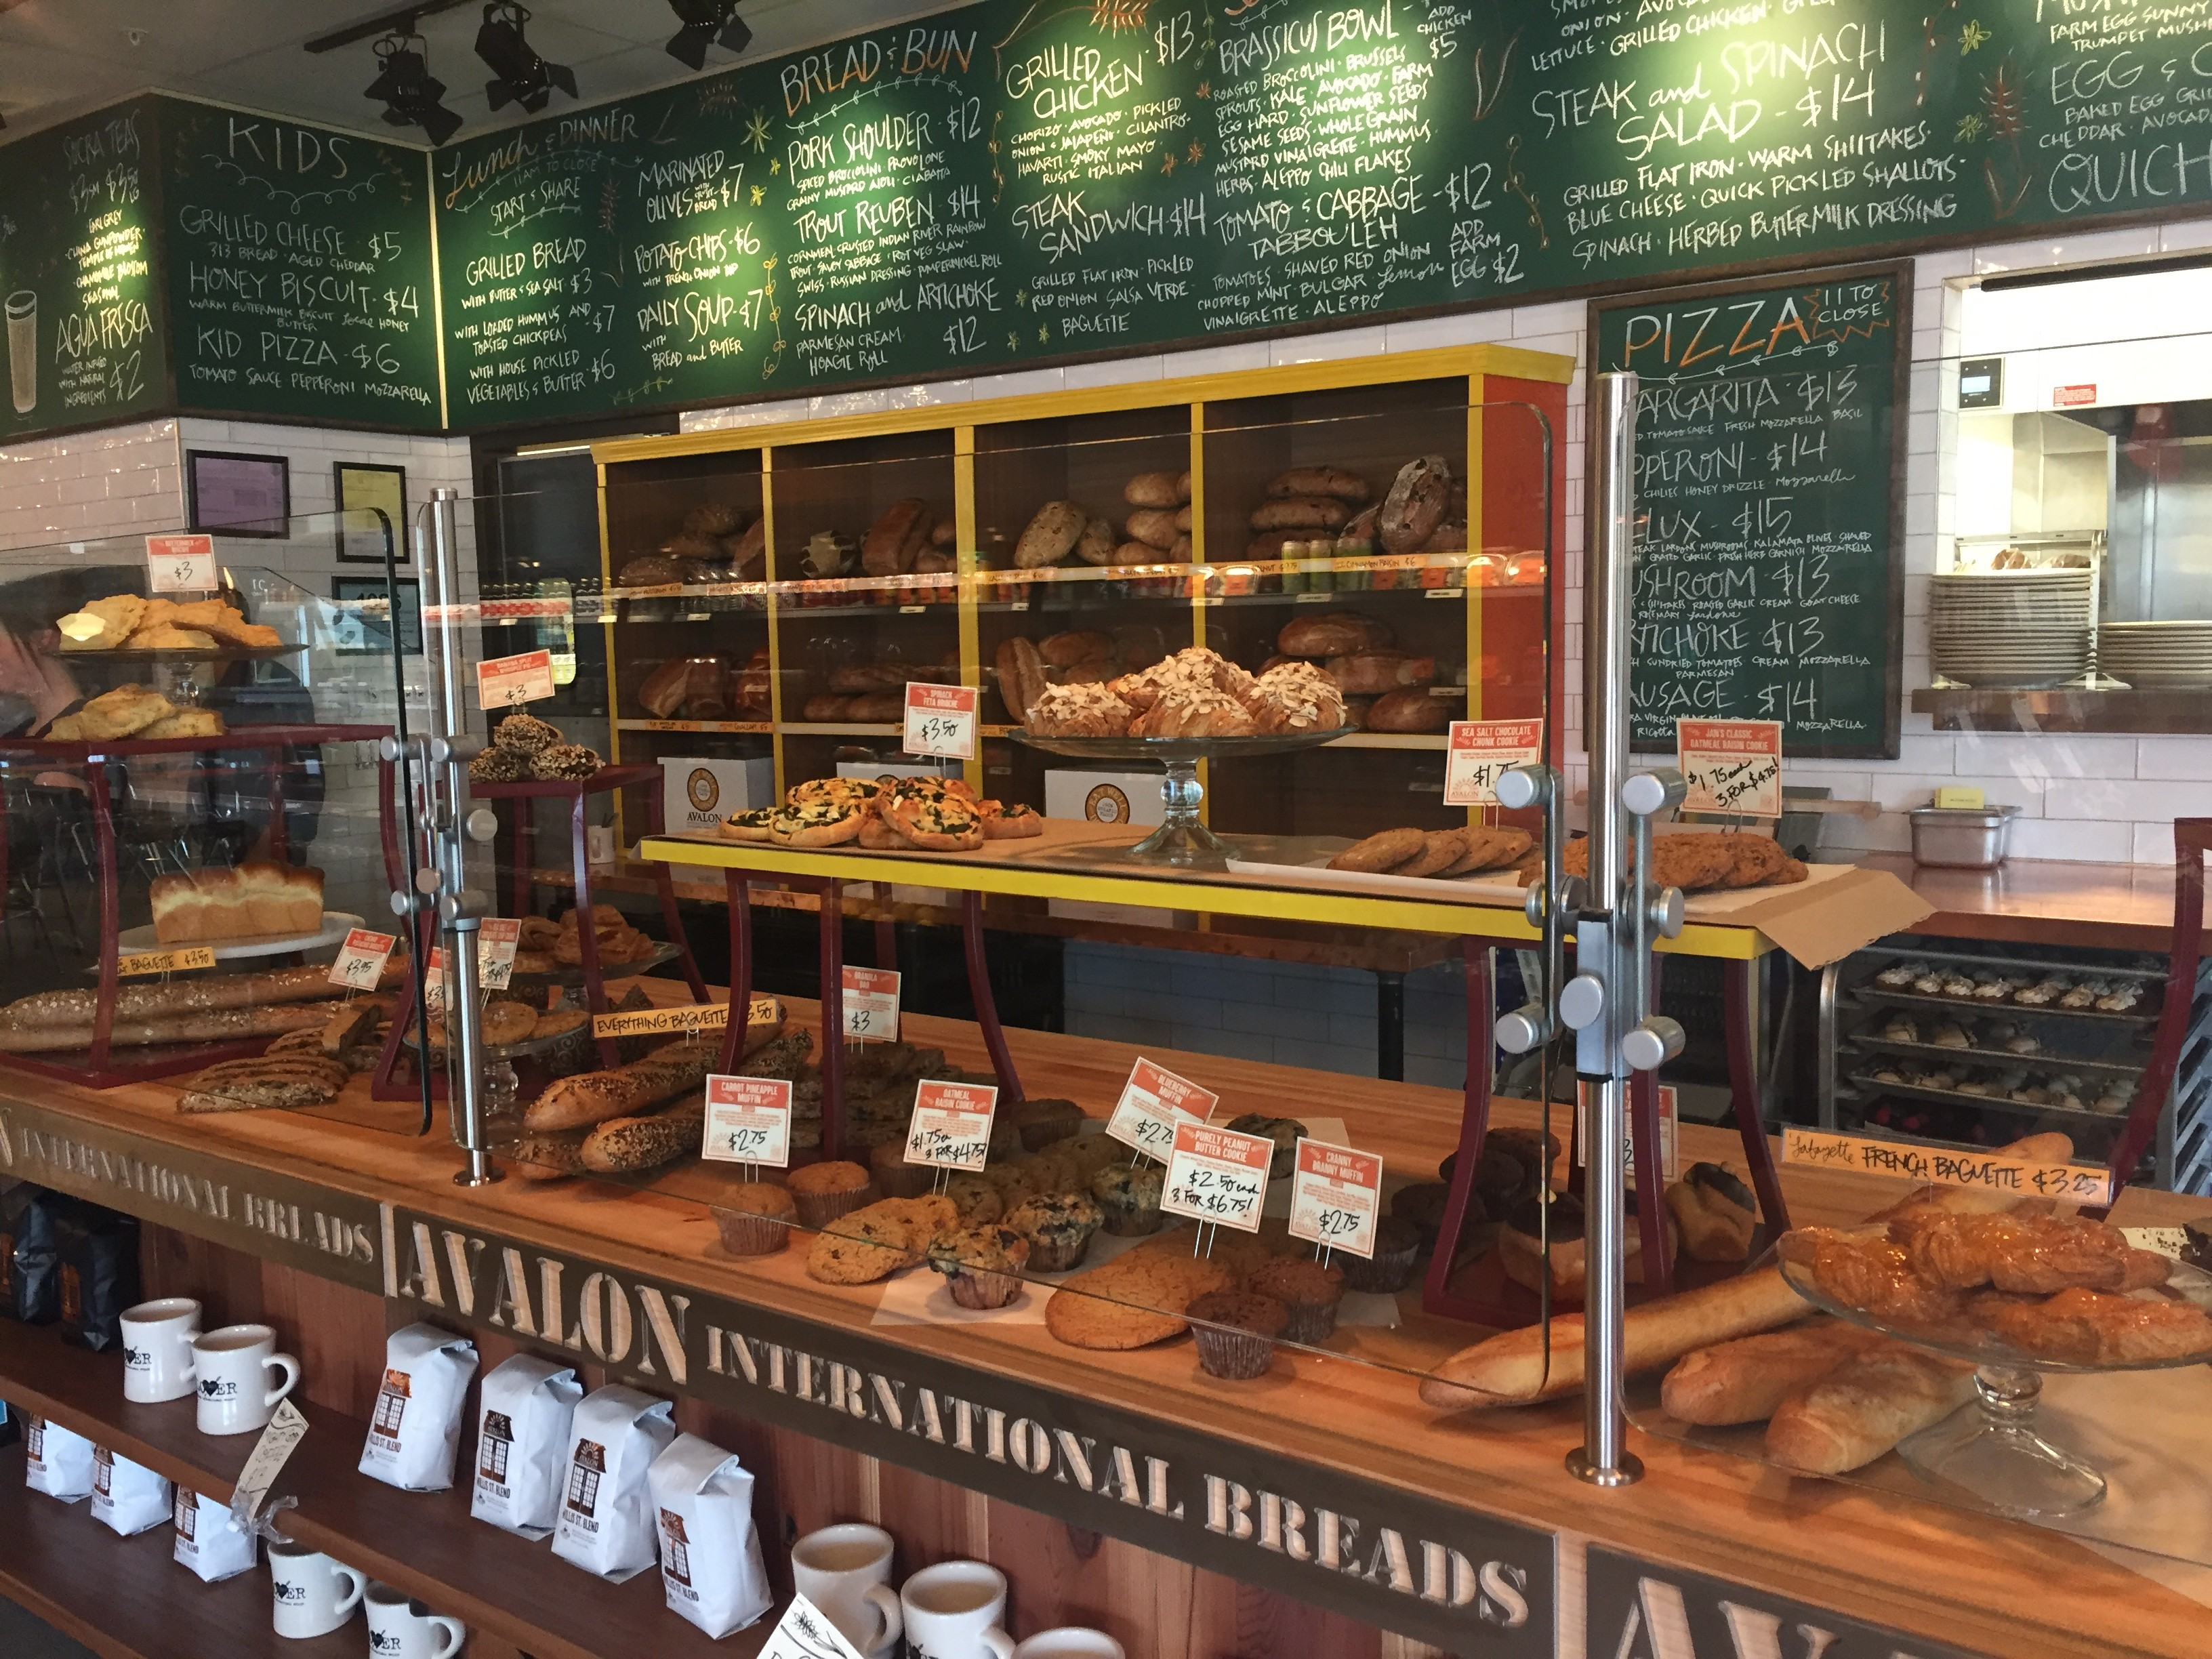 downtown detroit's new avalon café and bakery is now open | table